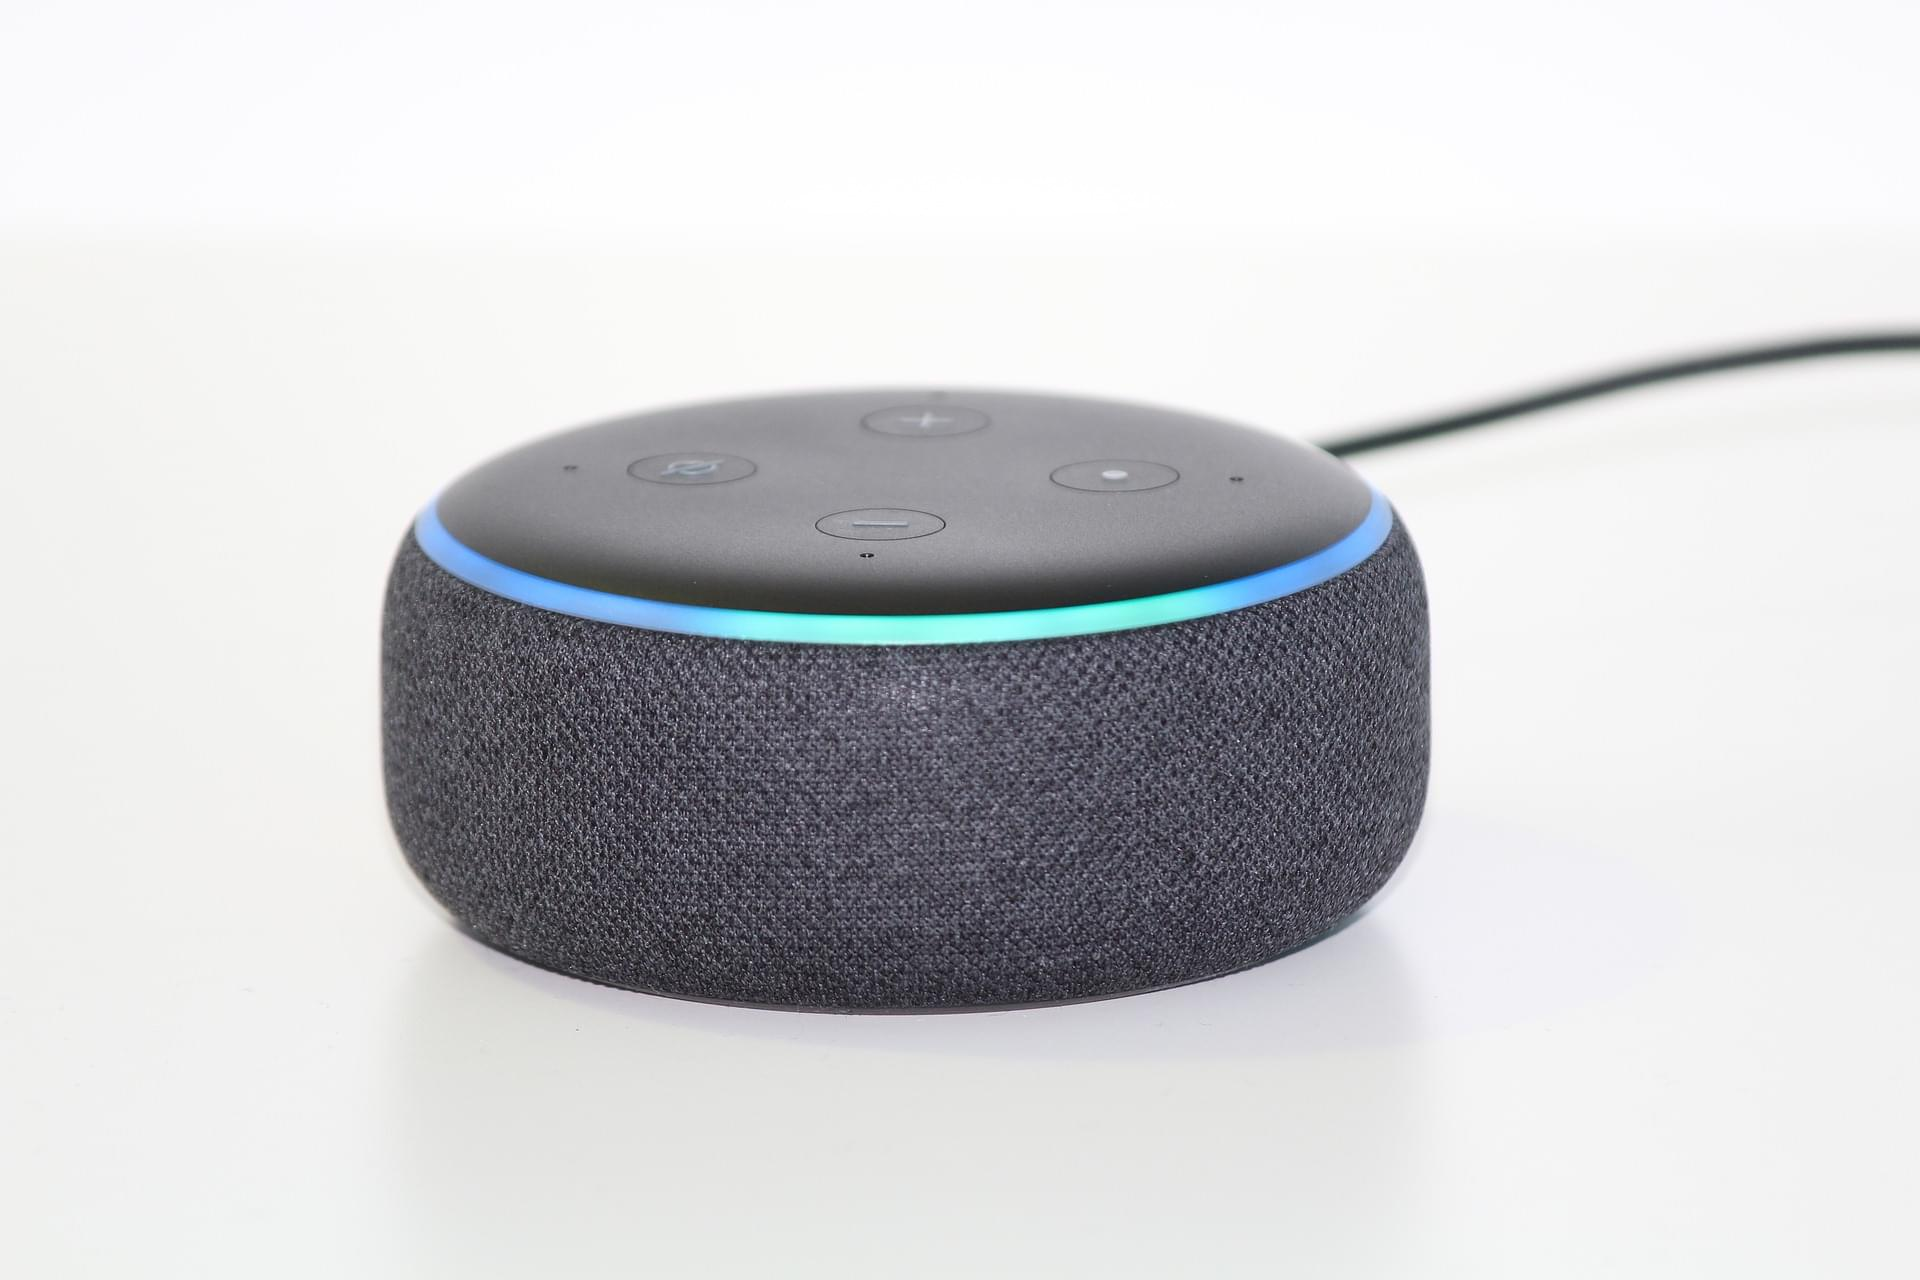 What do we really have Alexa help us with?